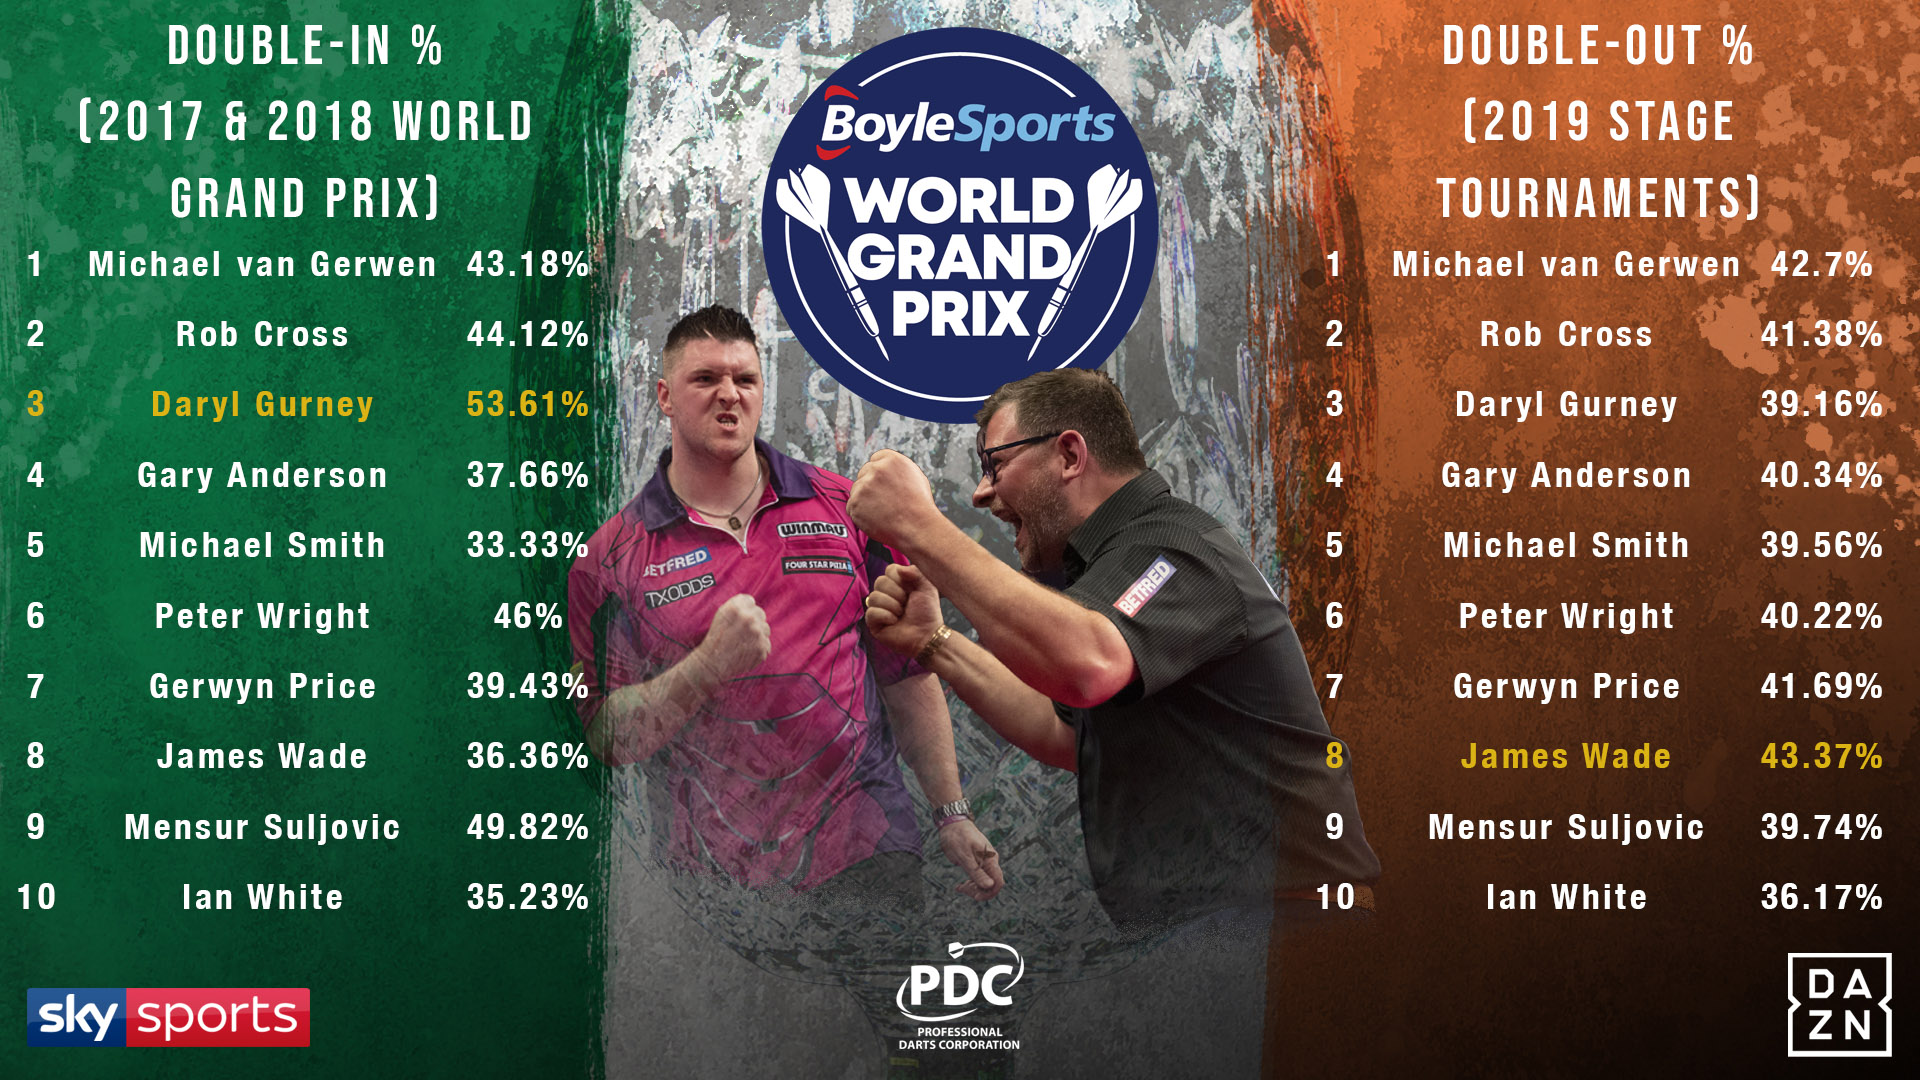 Top ten double stats (PDC)